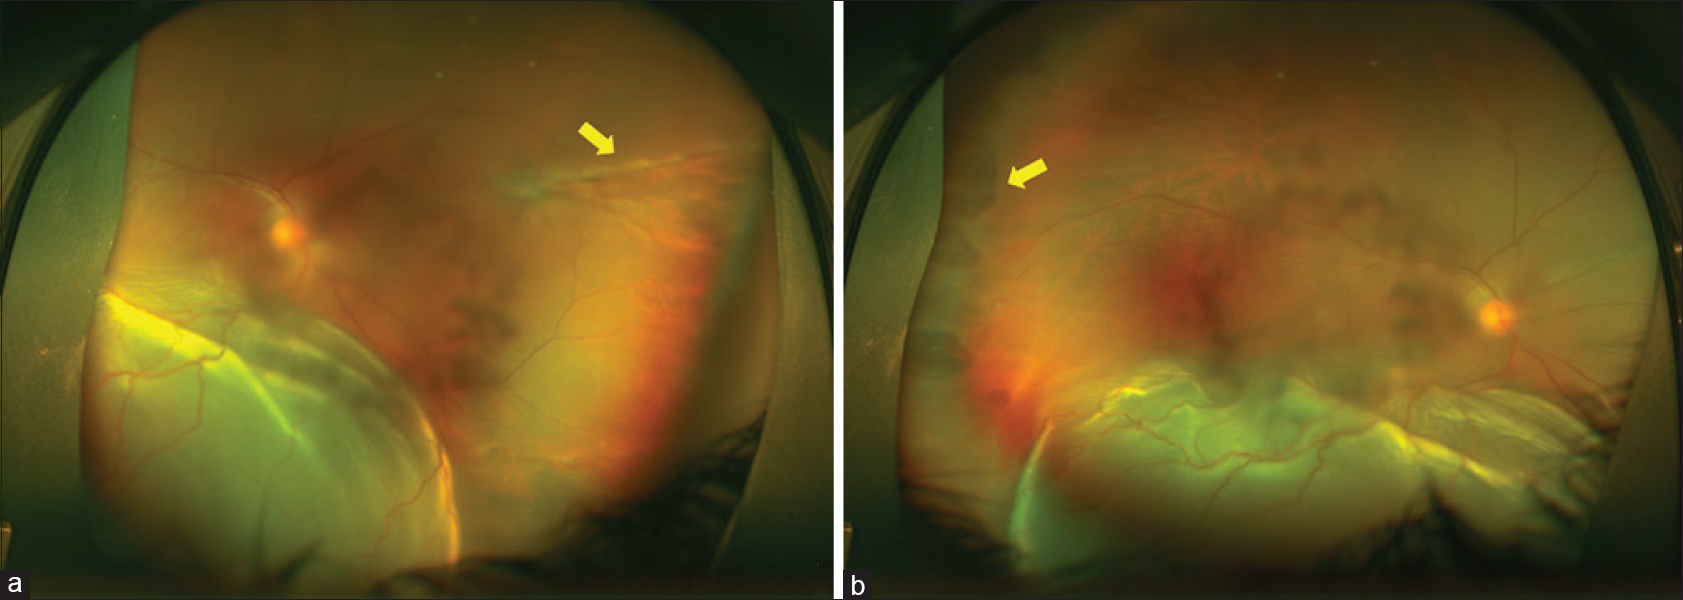 Figure 1: (a) Ultra-wide field fundus image of the right eye showing rhegmatogenous retinal detachment with the peripheral coastline like degeneration on the nasal side (yellow arrow). The degeneration had well-defined margins with hypopigmented border. (b) Temporal periphery of the same eye showing multiple patchy isolated degenerations simulating oral bays